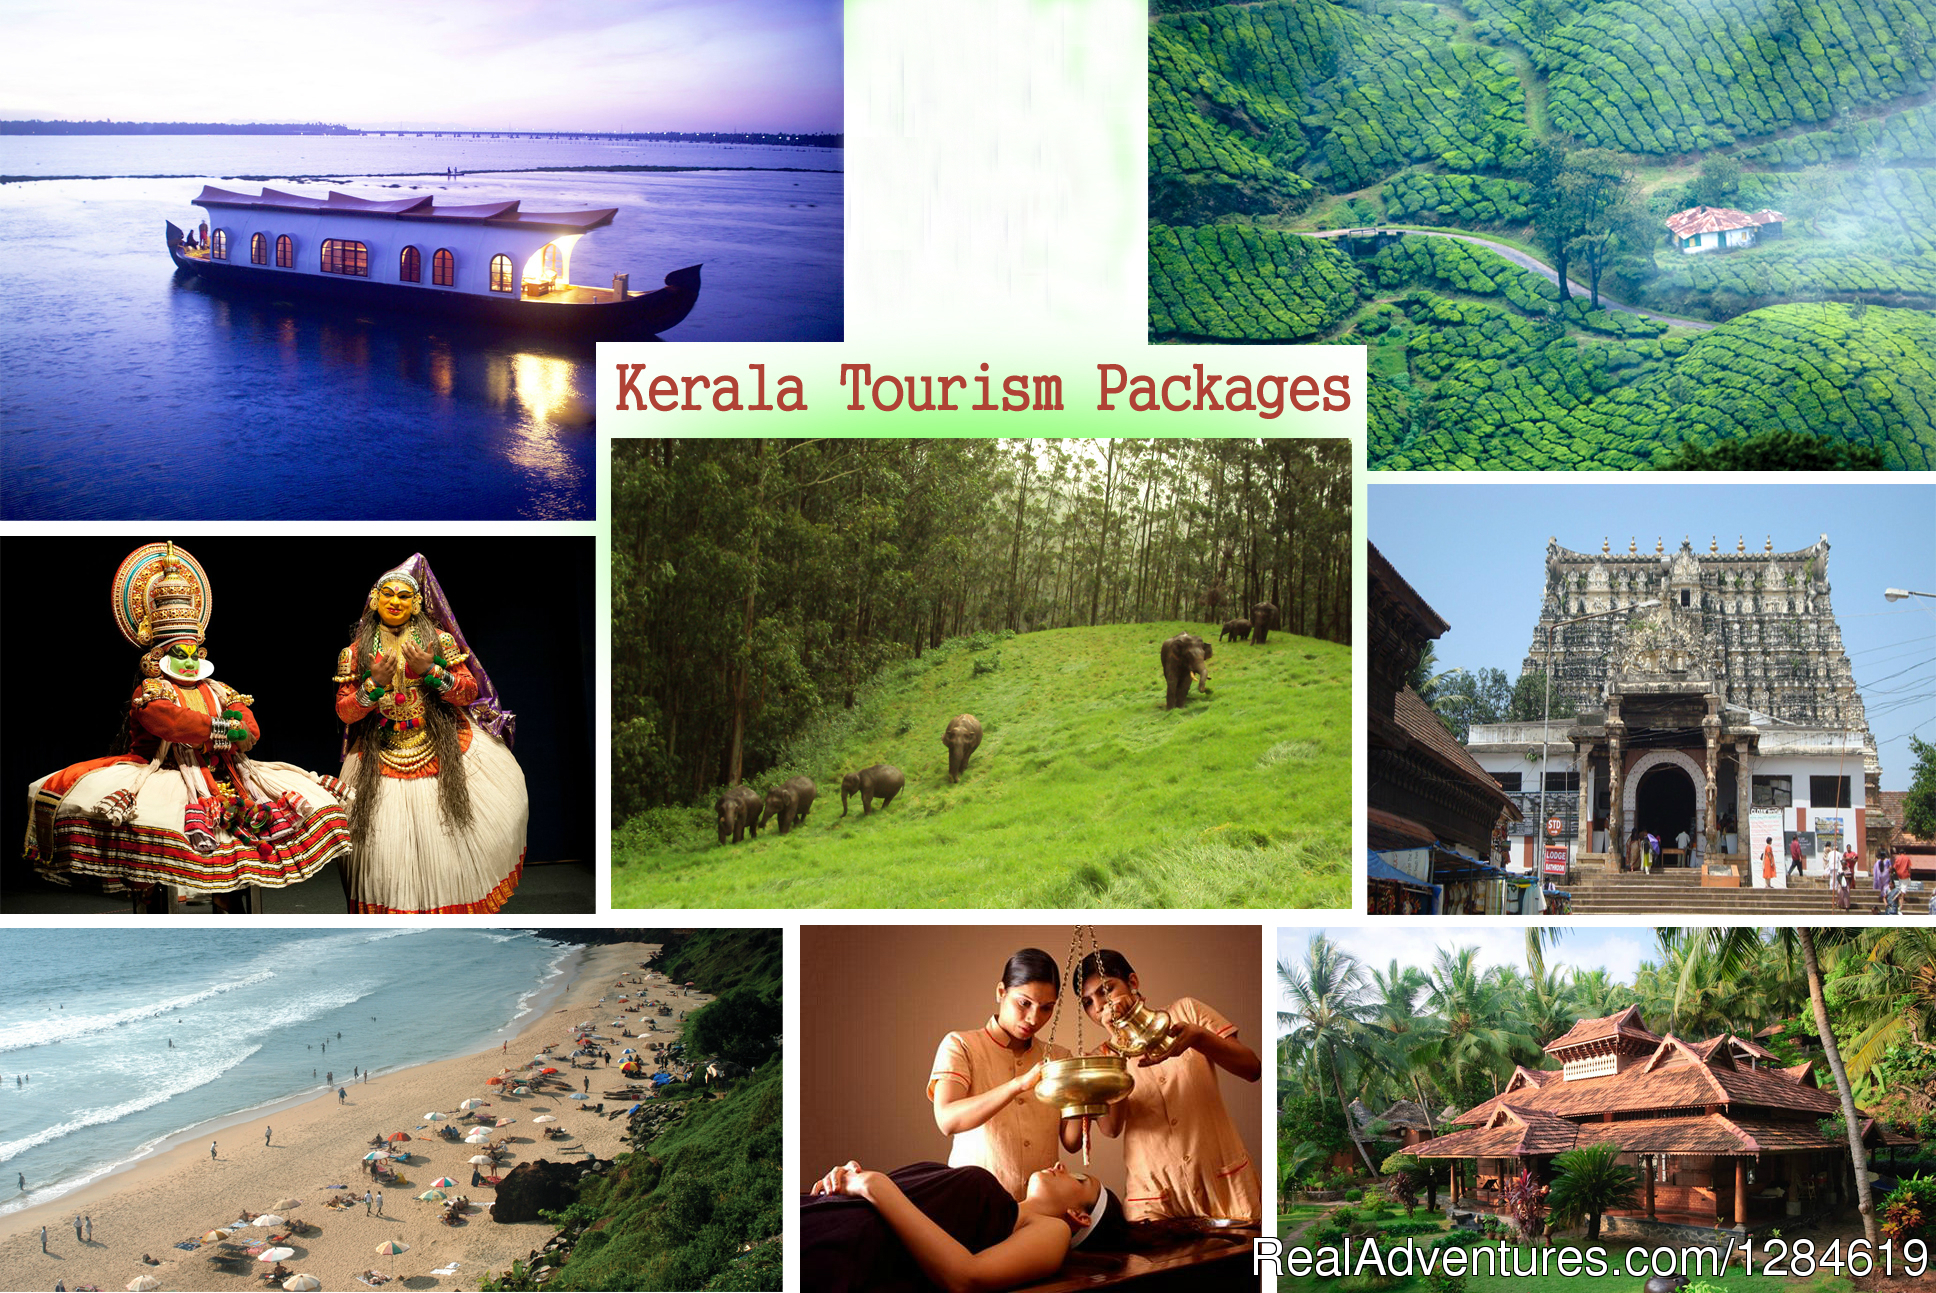 Kerala Tourism Packages | Image #2/2 | Hilife Tours